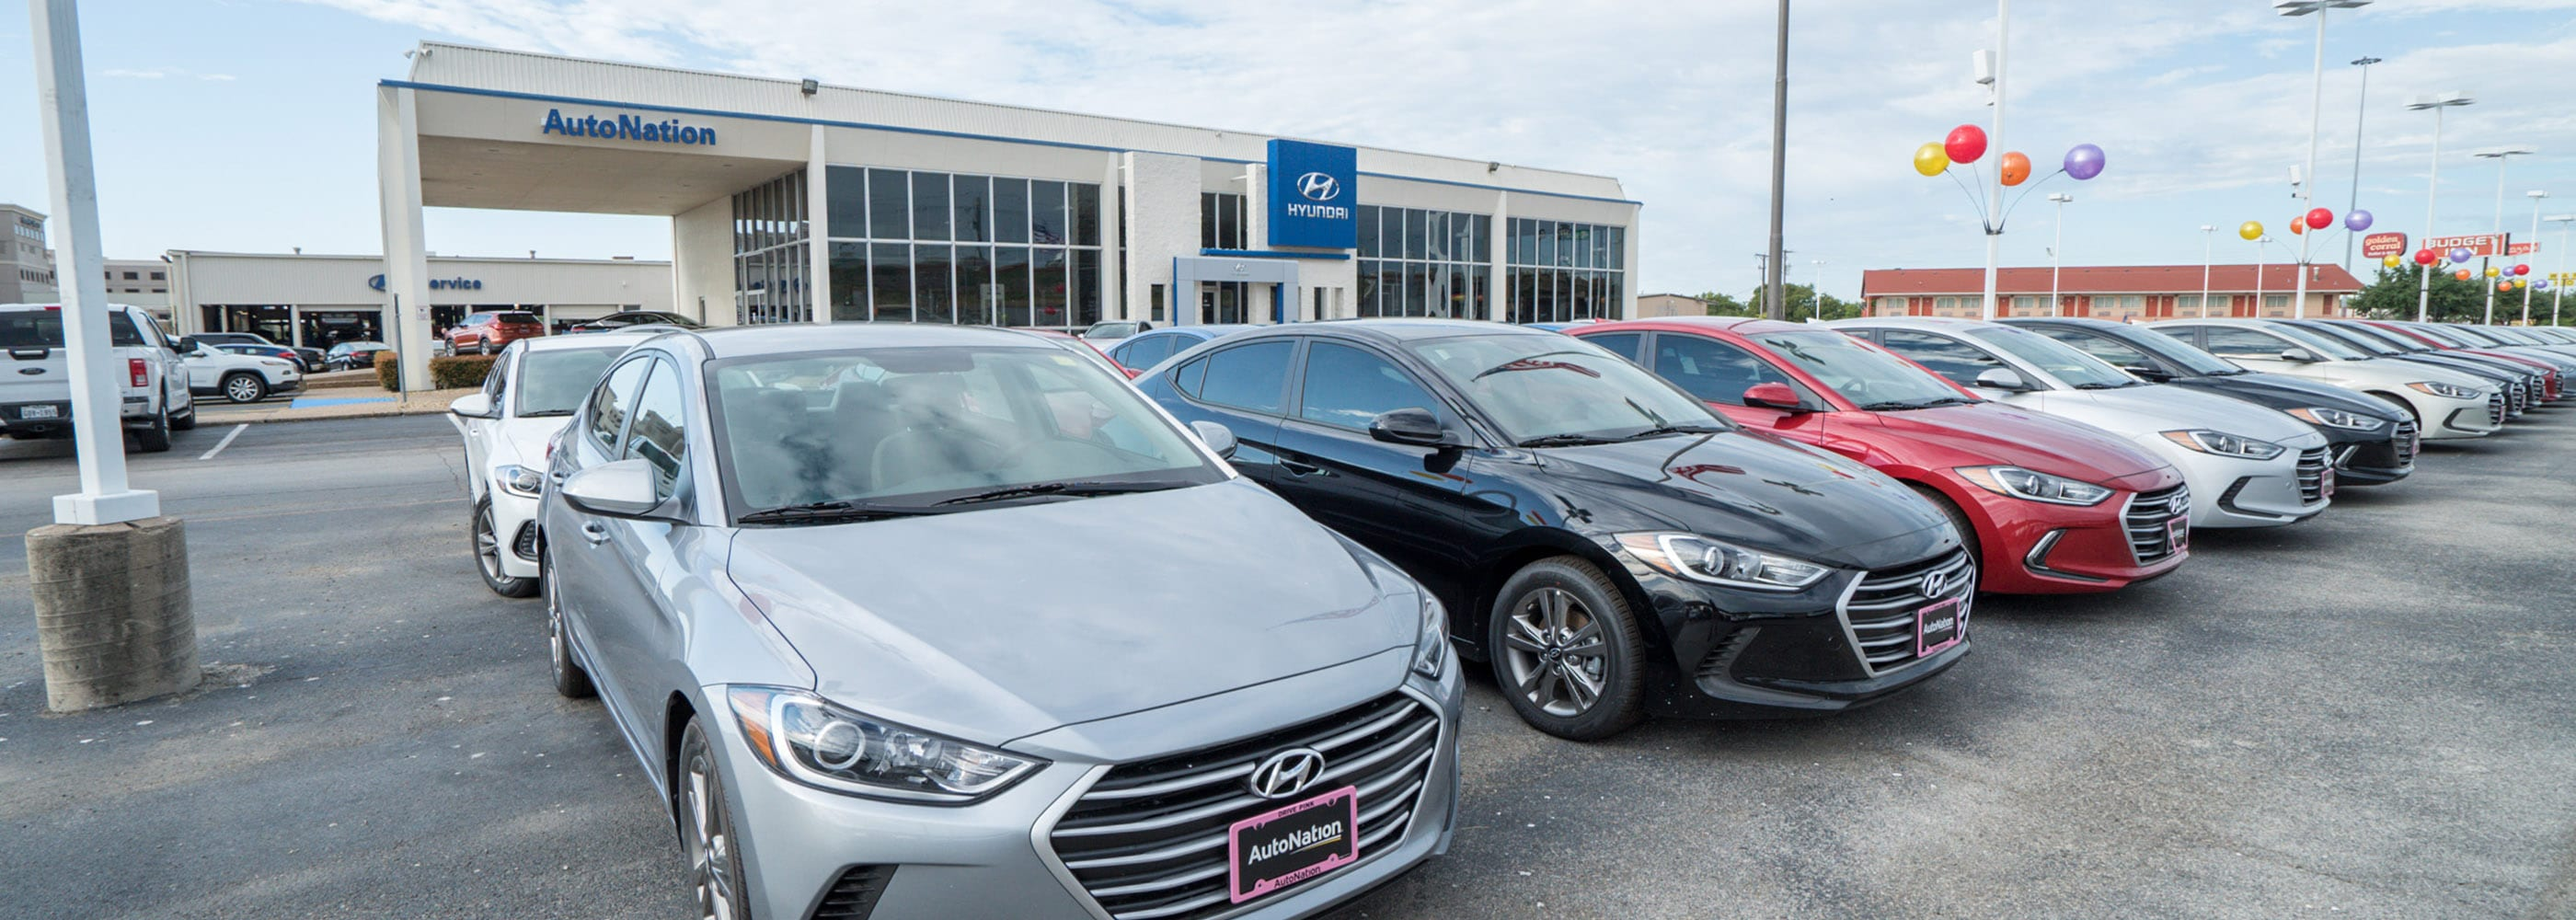 Fort Worth Hyundai Dealerships >> Hyundai Dealer Near Fort Worth Tx Autonation Hyundai North